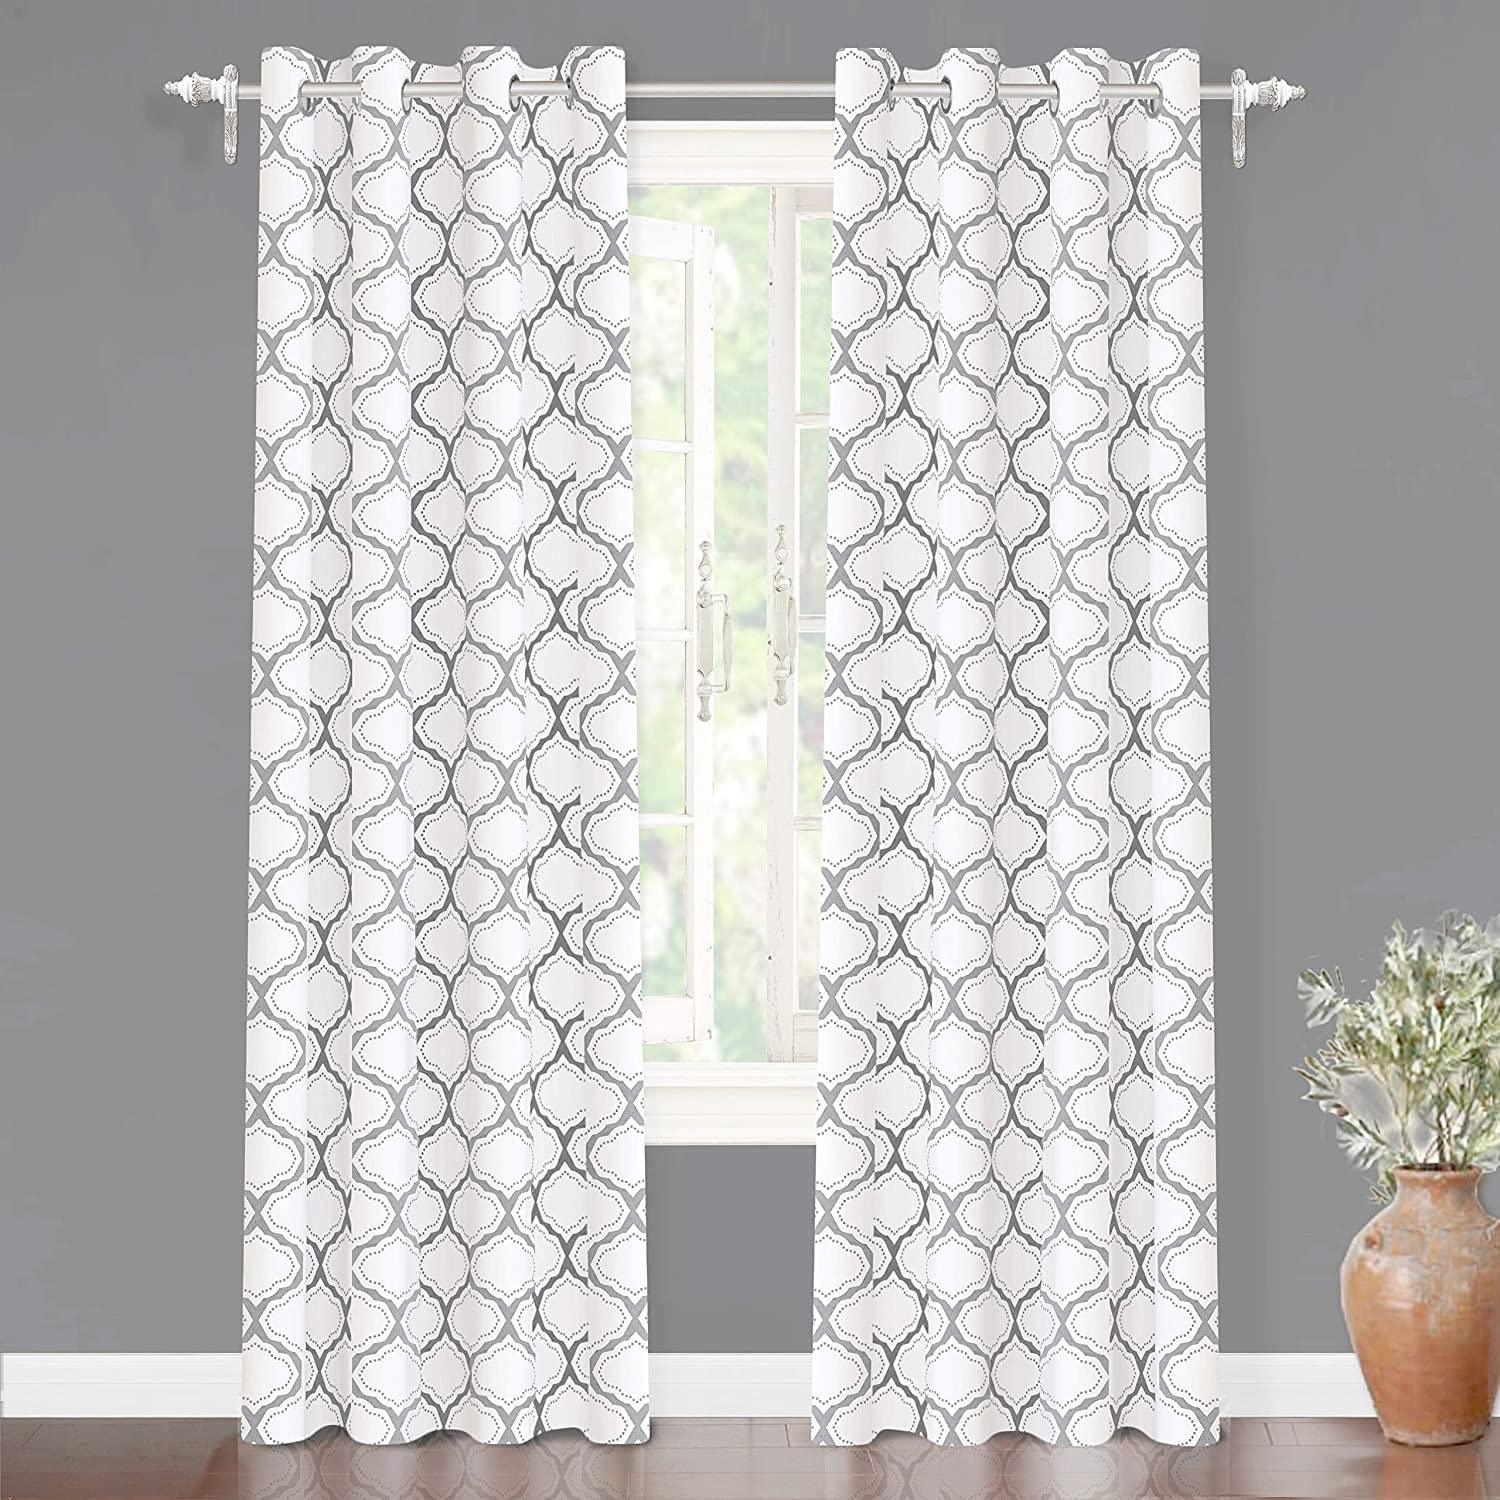 "DriftAway Geometric Trellis Room Darkening/Thermal Insulated Grommet Unlined Window Curtain Drapes Pair for Living Room, Bedroom, Set of Two Panels, Each 52""x84"" (Gray)"